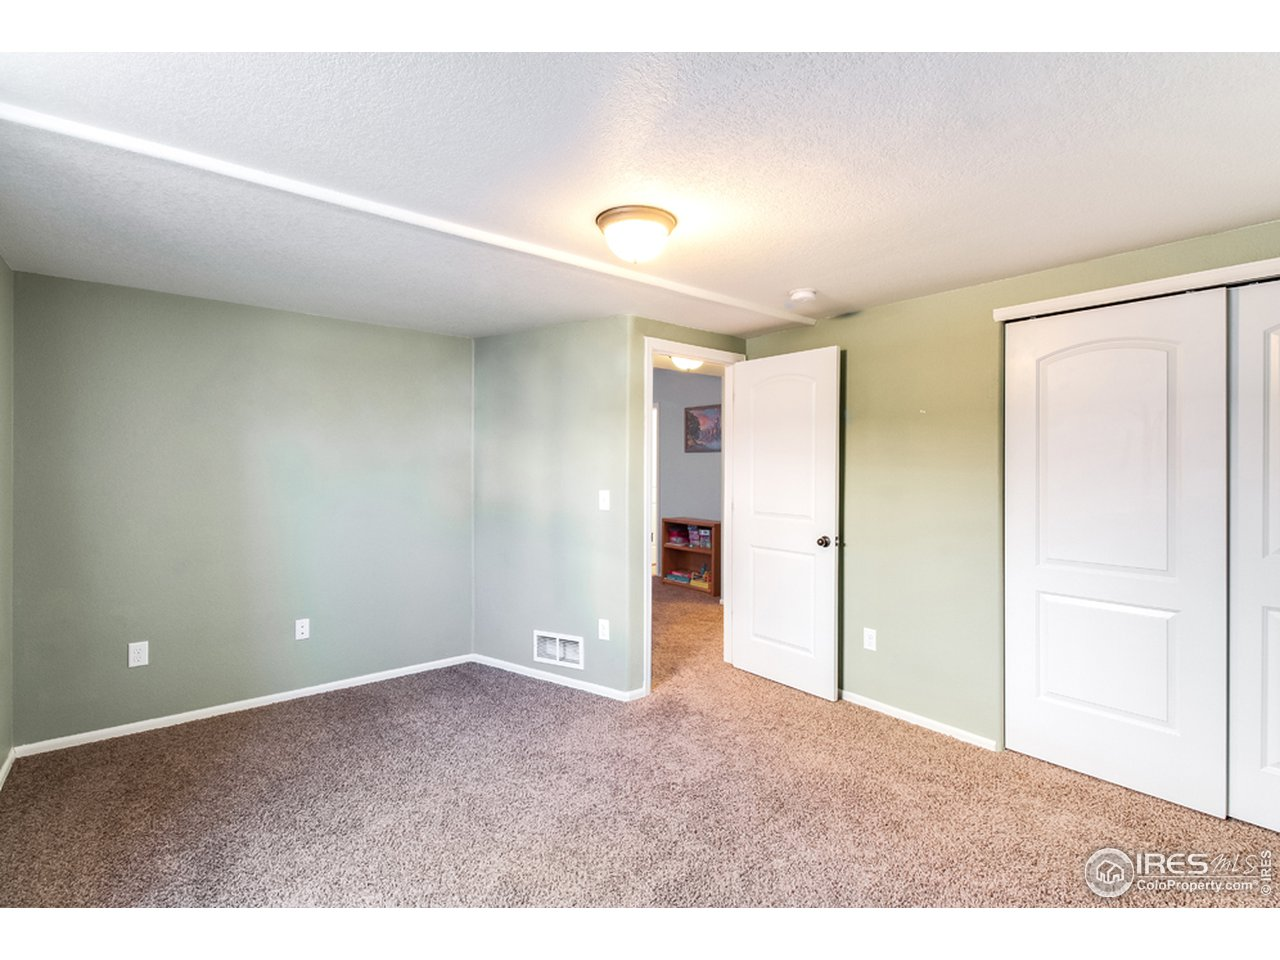 Large basement Bedroom (4th)